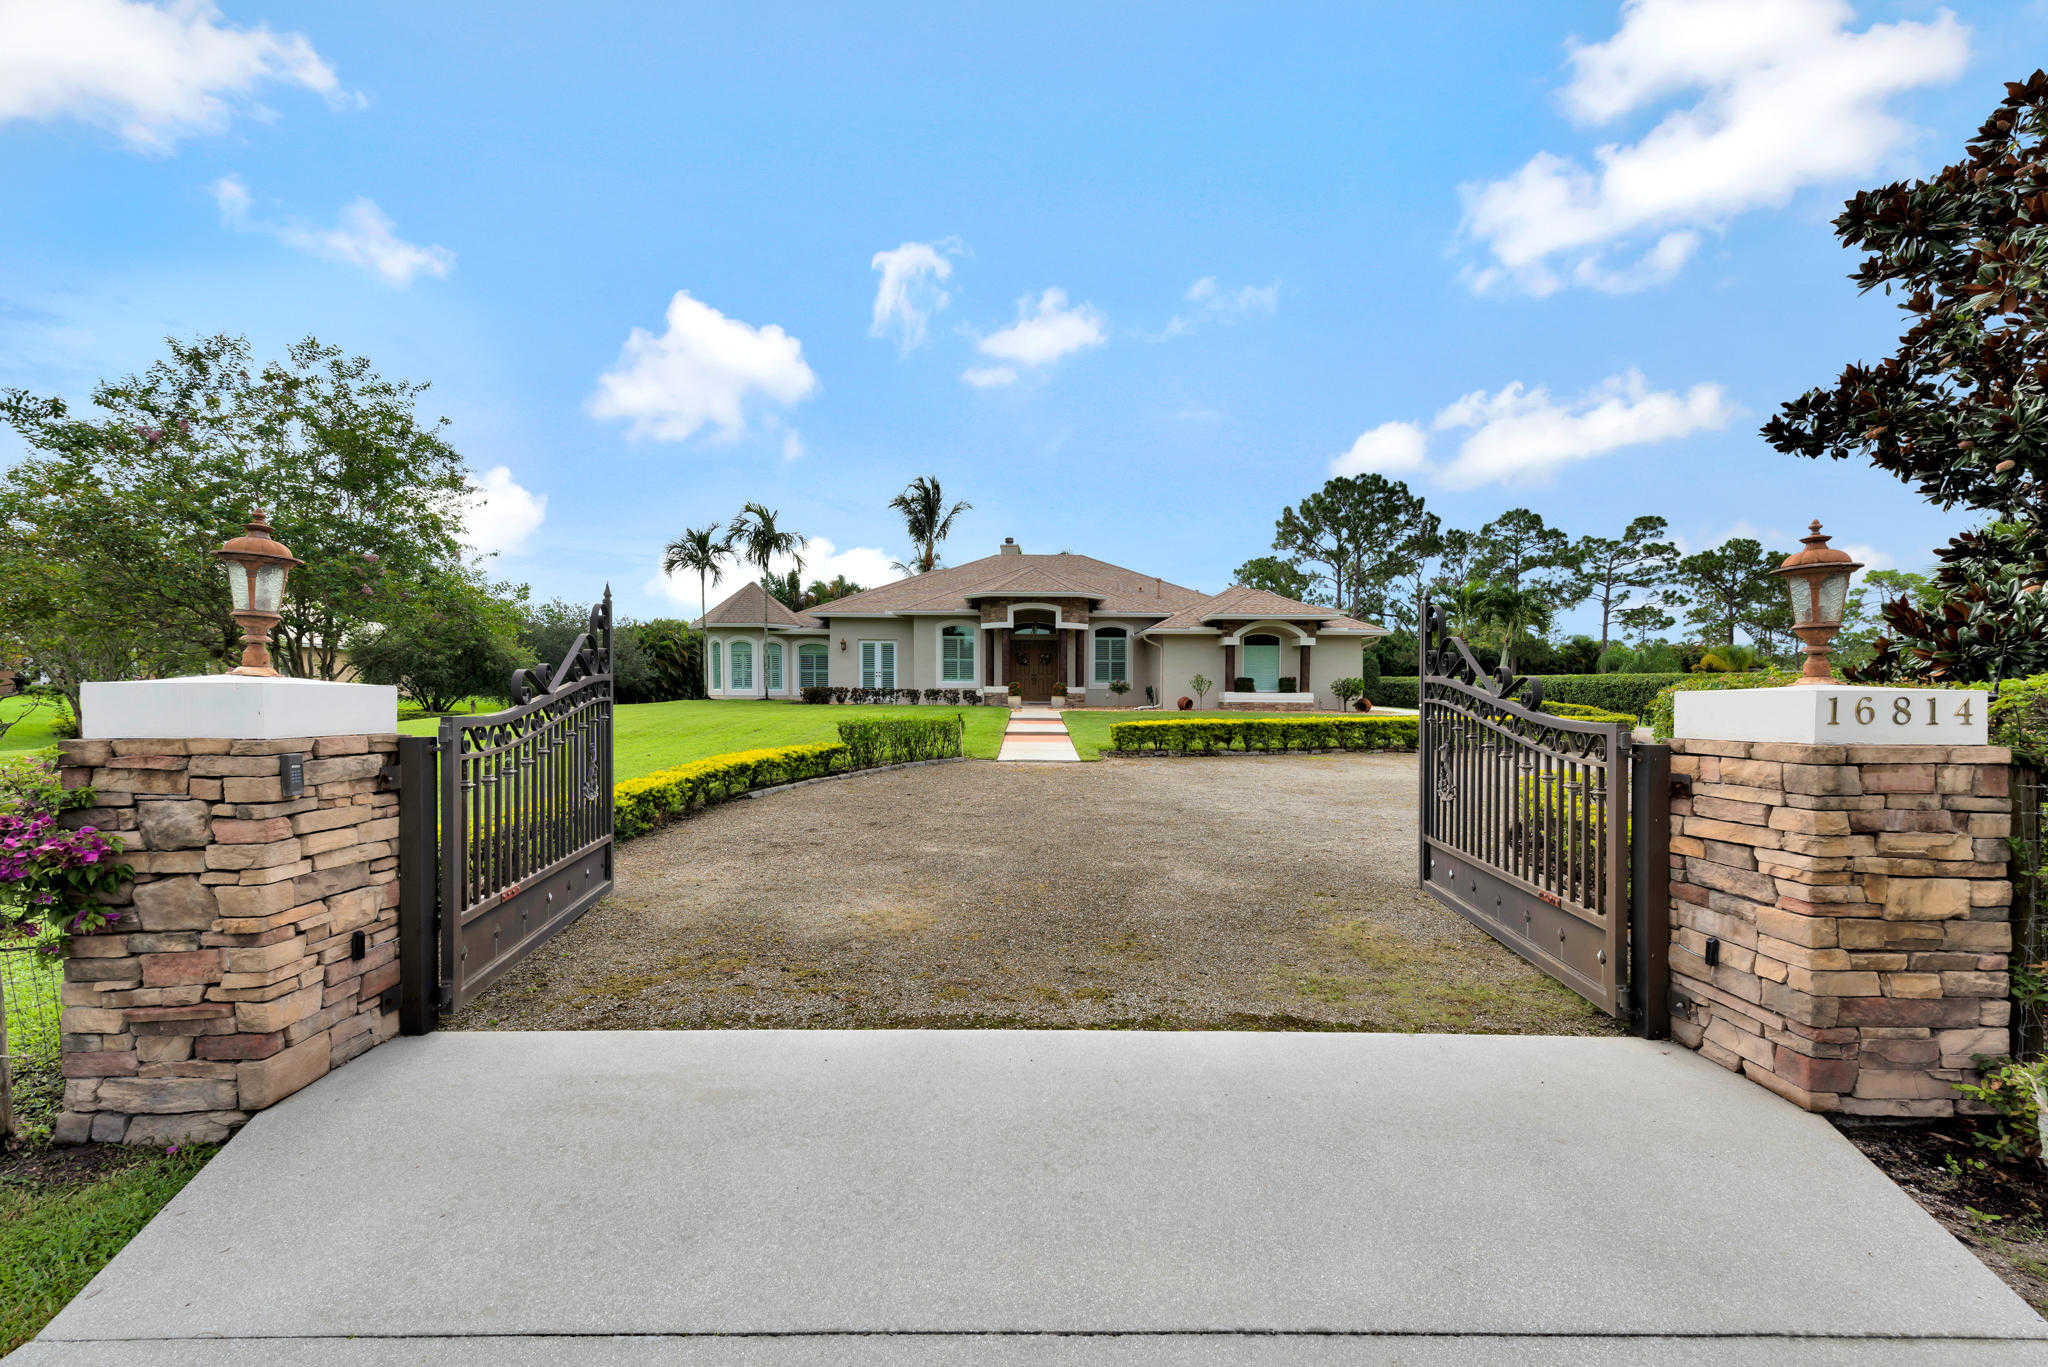 16814 Mellen Lane, Jupiter, FL 33478 has an Open House on  Sunday, August 11, 2019 1:00 PM to 3:30 PM